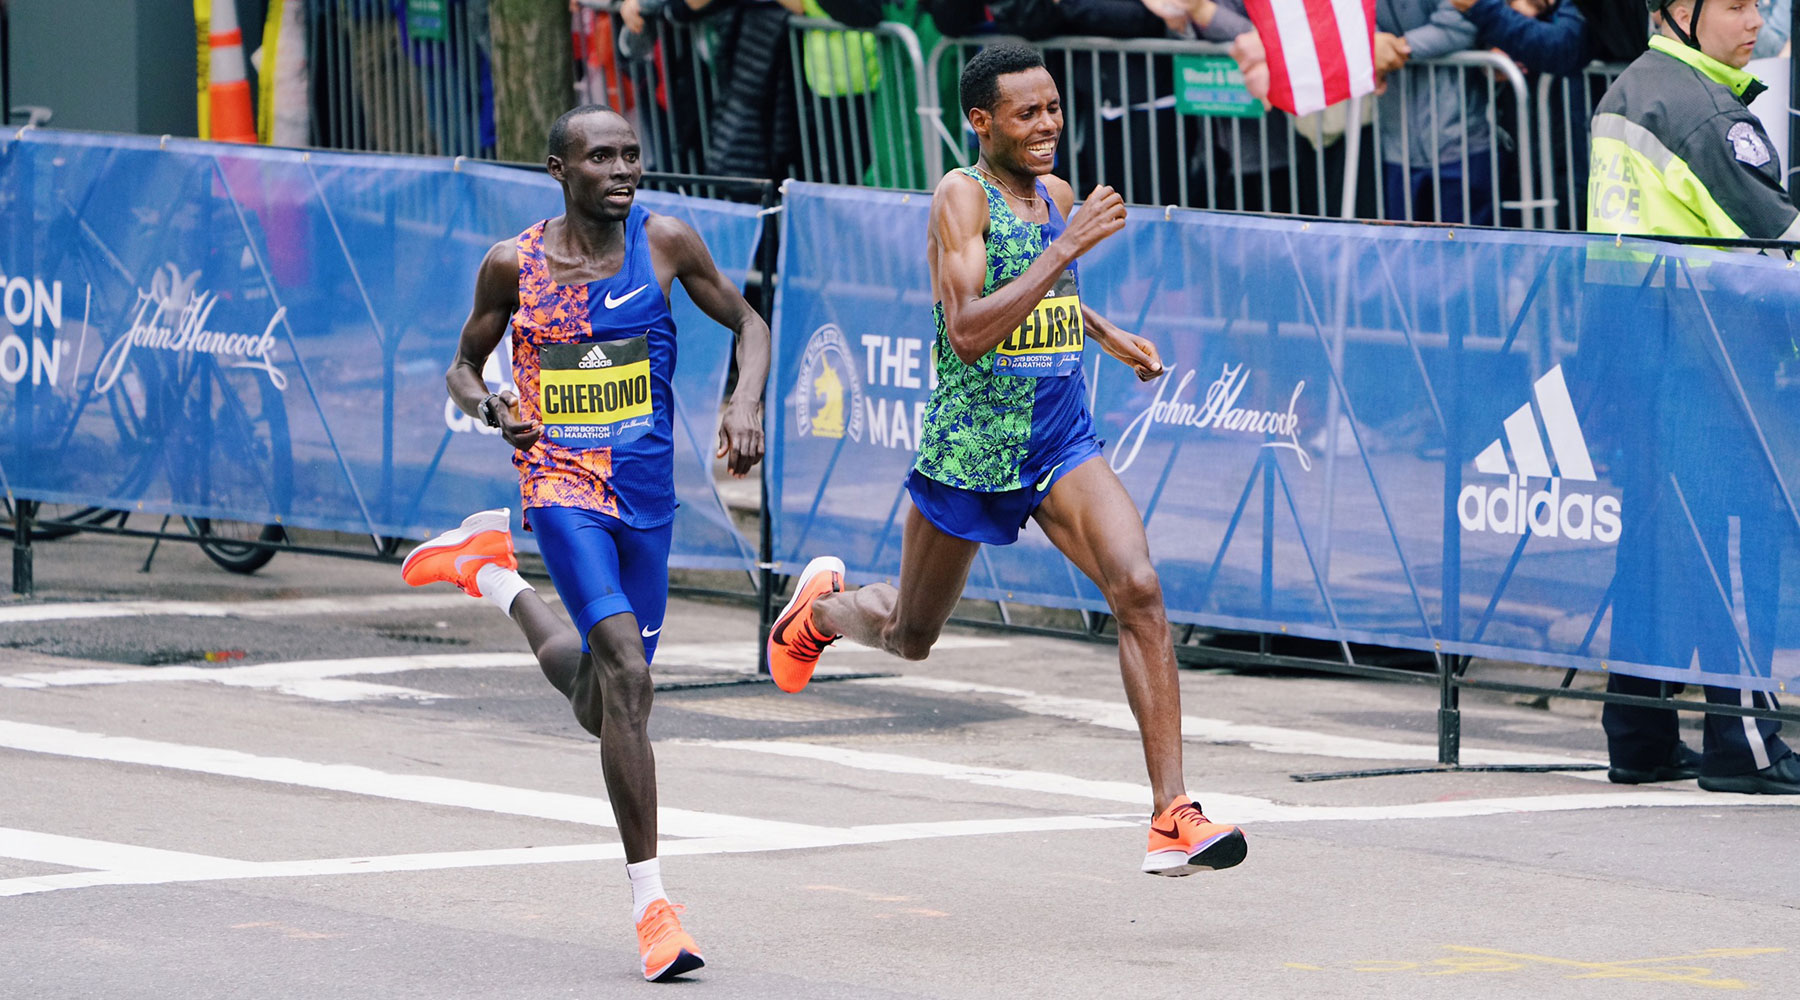 Sprint finish stars back for more in Boston